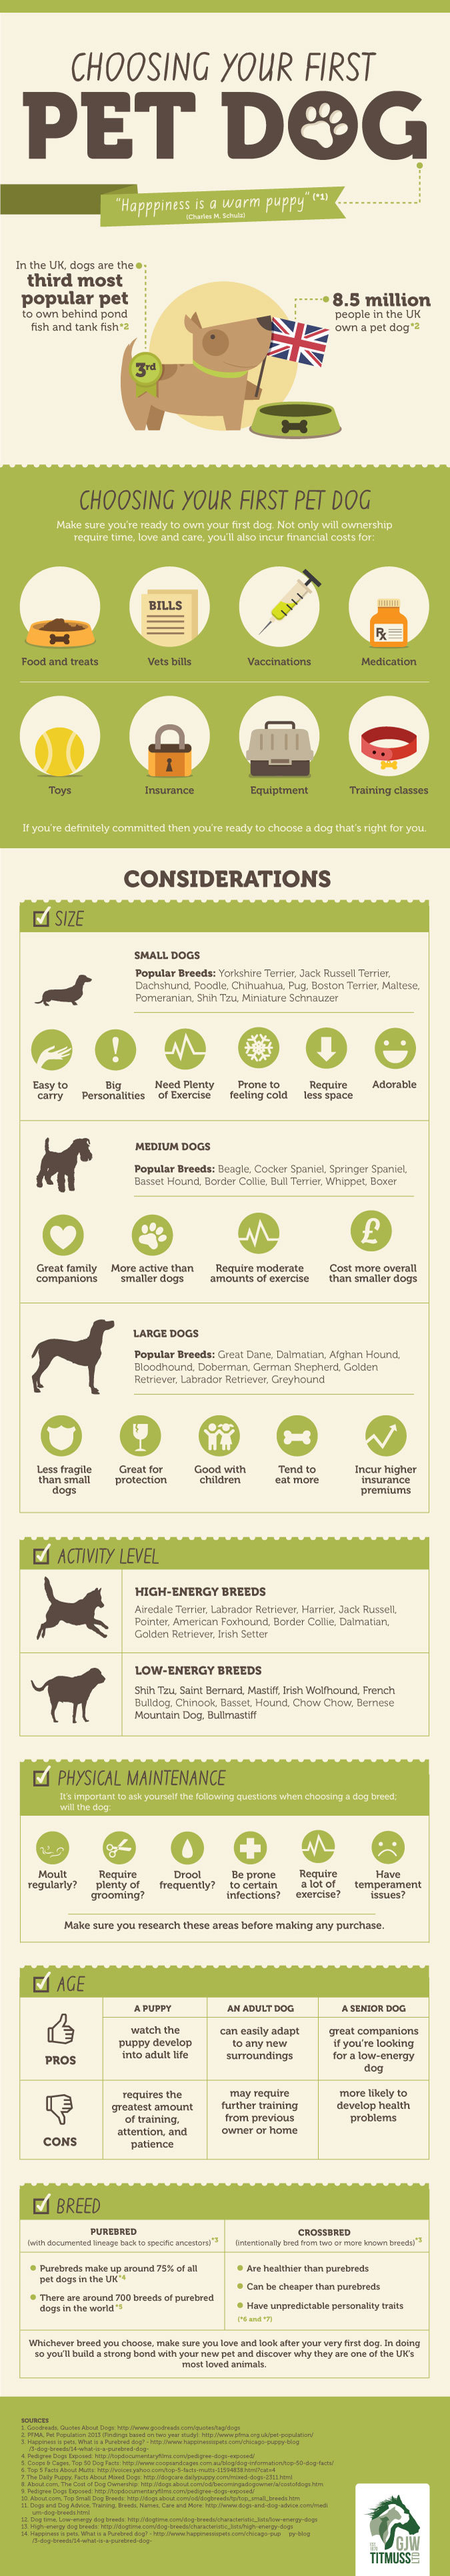 Choosing Your First Pet Dog by GJW Titmuss